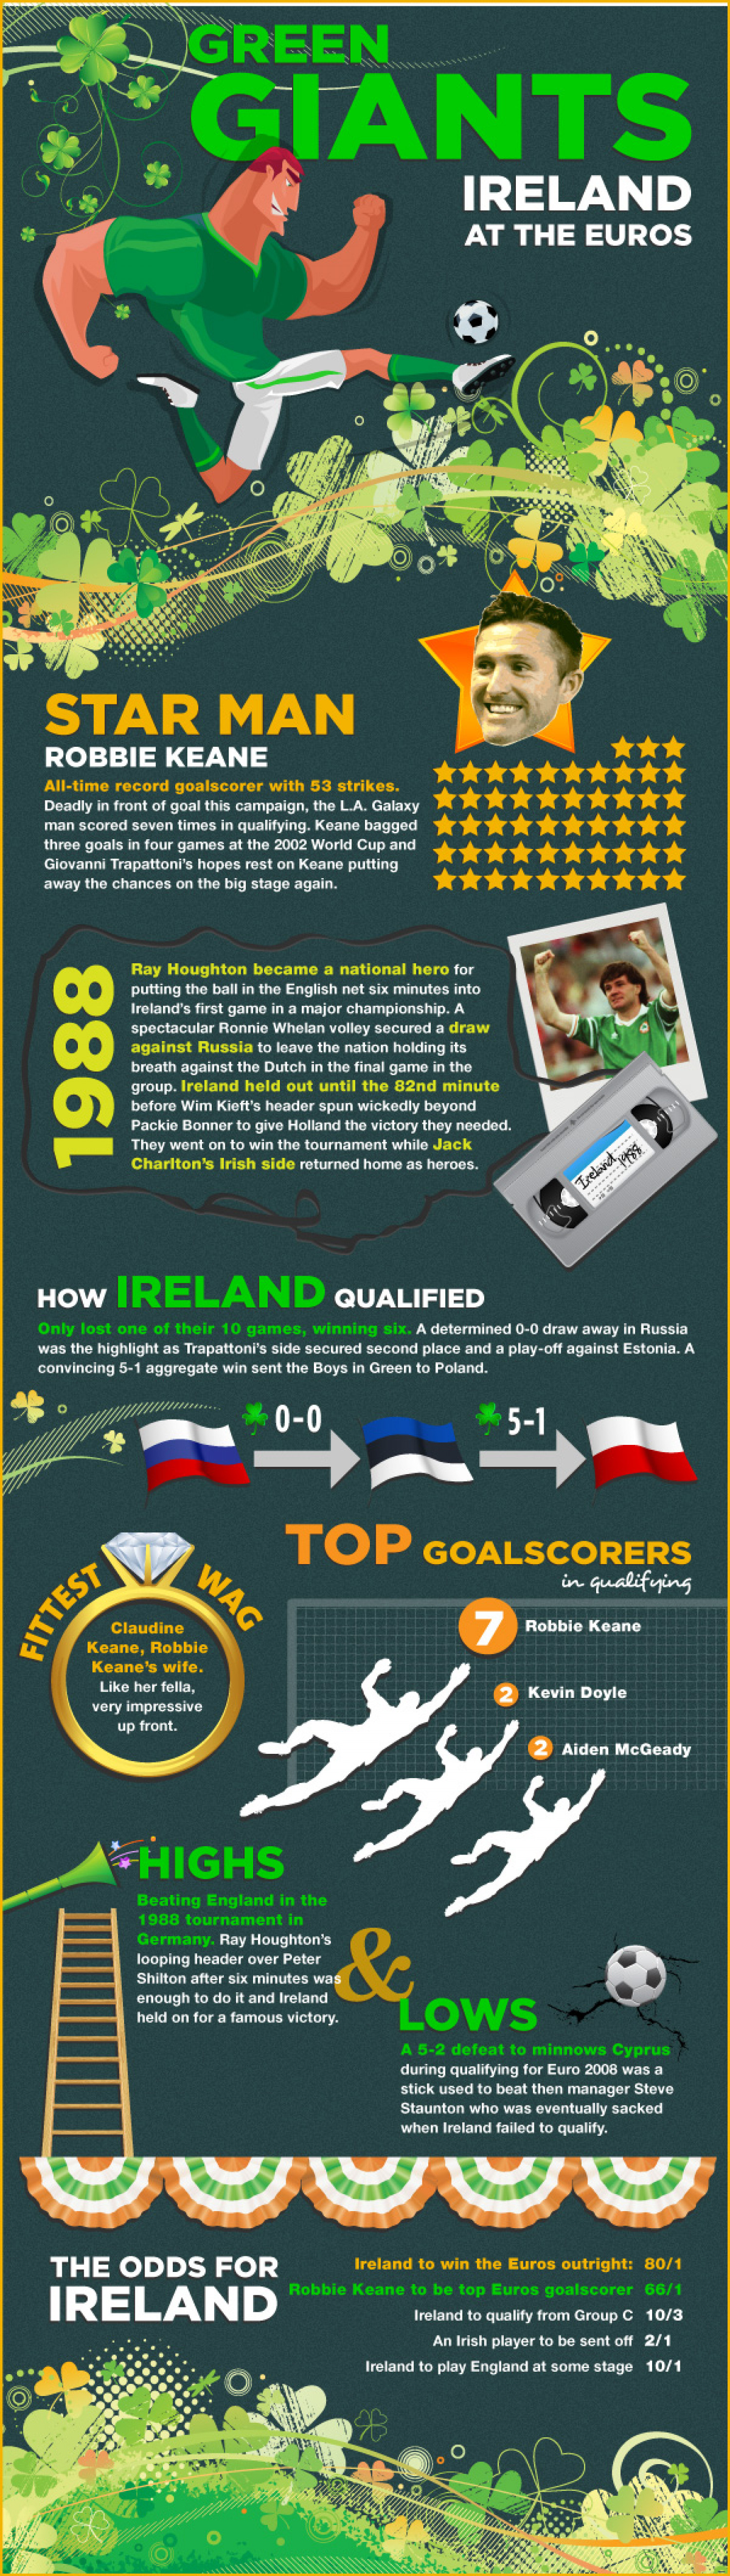 Green Giants - Ireland at the Euros Infographic